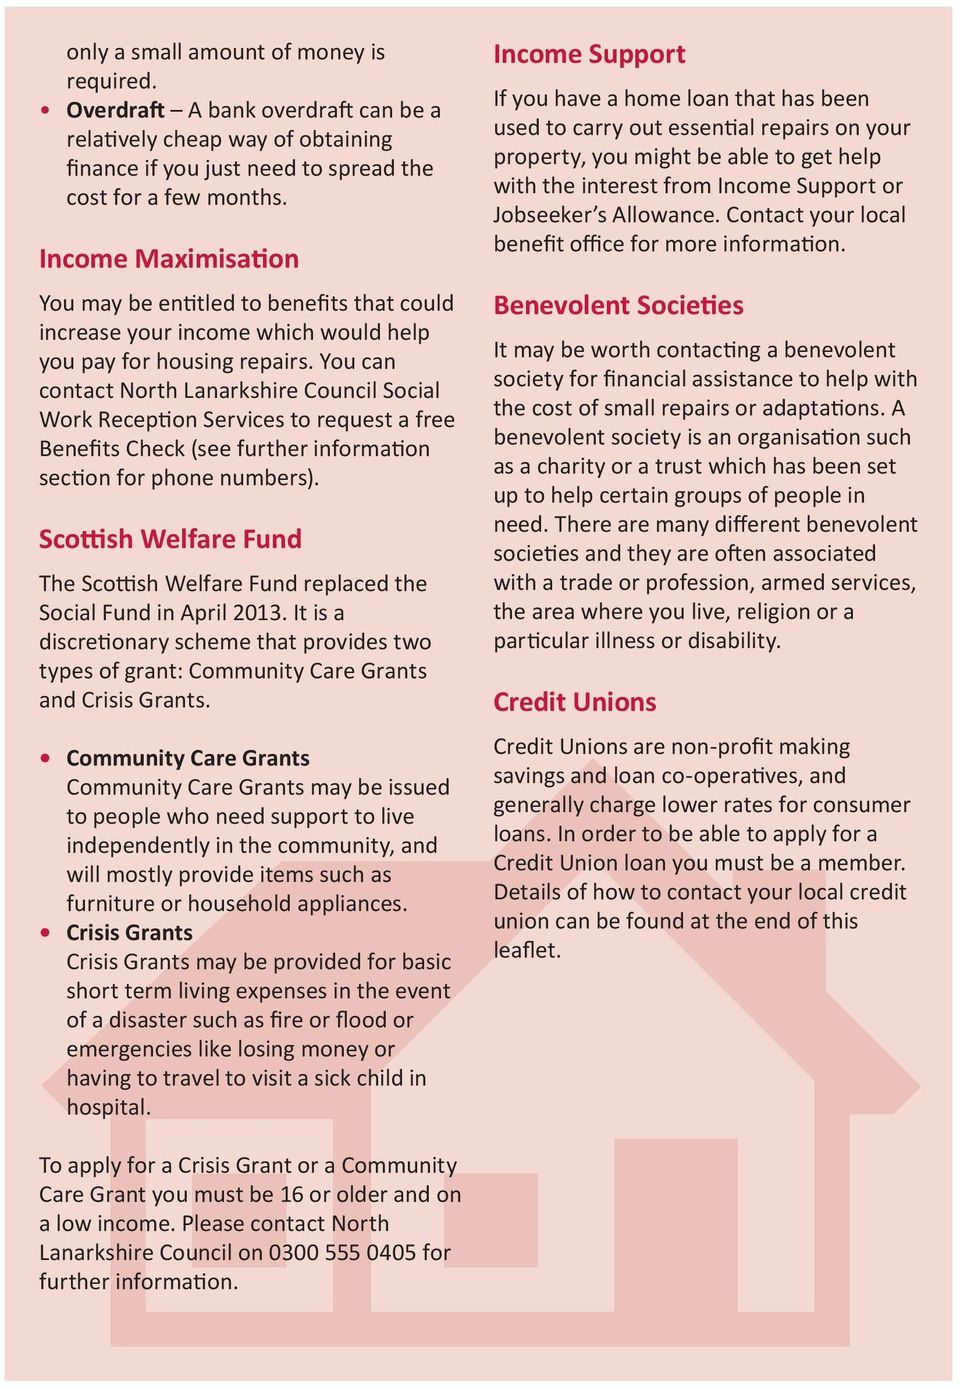 You can contact North Lanarkshire Council Social Work Reception Services to request a free Benefits Check (see further information section for phone numbers).